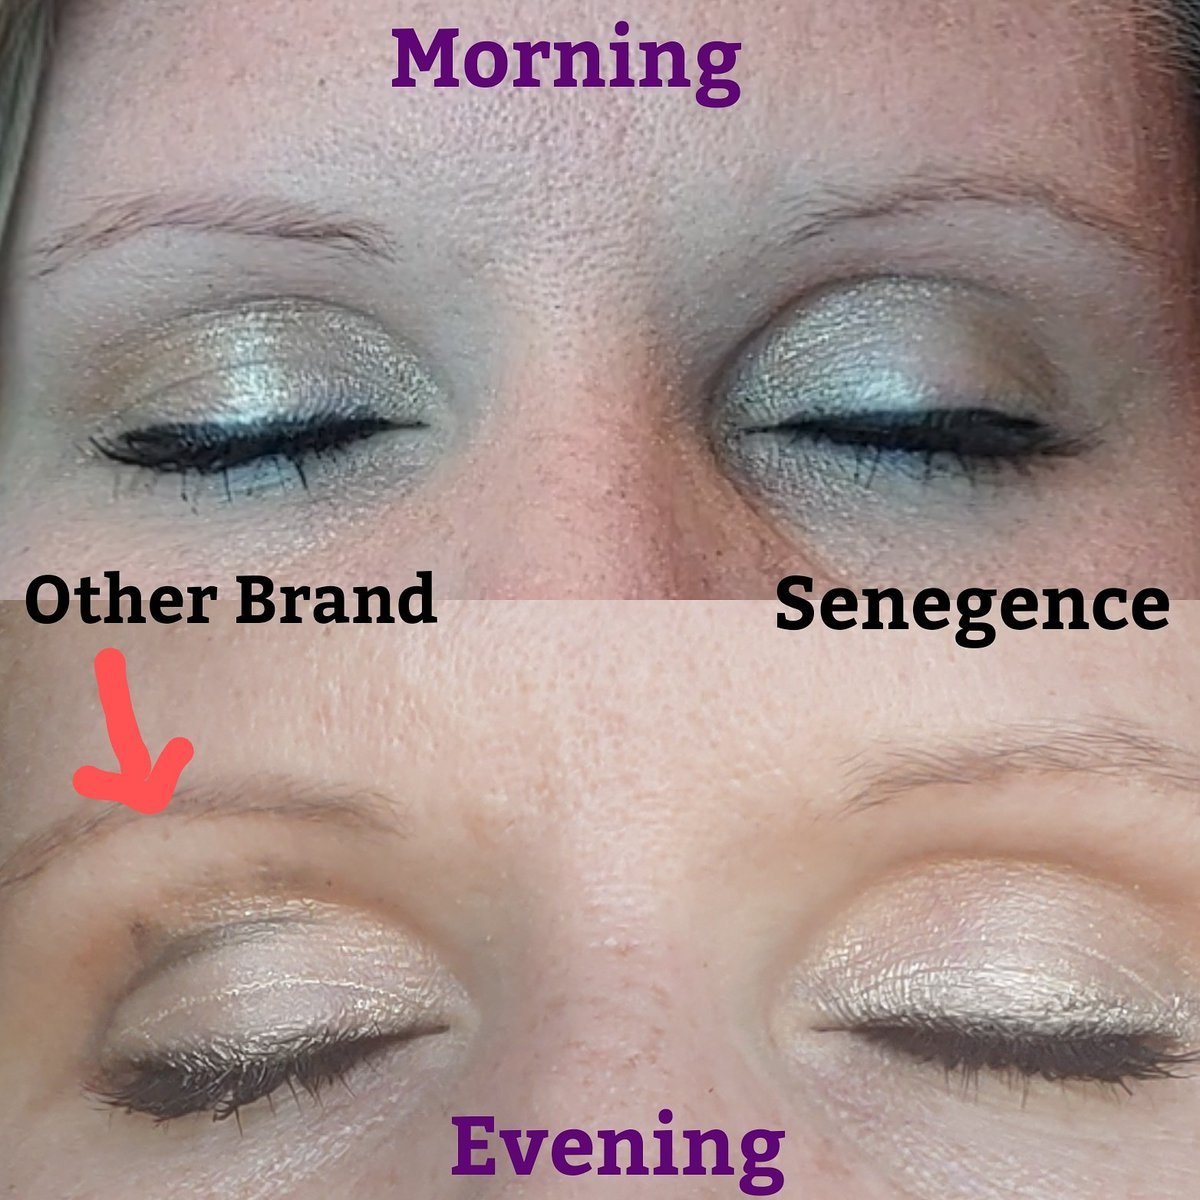 Wow  I thought I would compare the difference in my old mascara and Lashsense mascara. My old mascara by the end of the day was all over my eyelid.  I'm so glad I made the switch and don't have to worry about wiping my eyelid off all throughout the day.#beautytips #makeuppic.twitter.com/dAZNBsWQBA